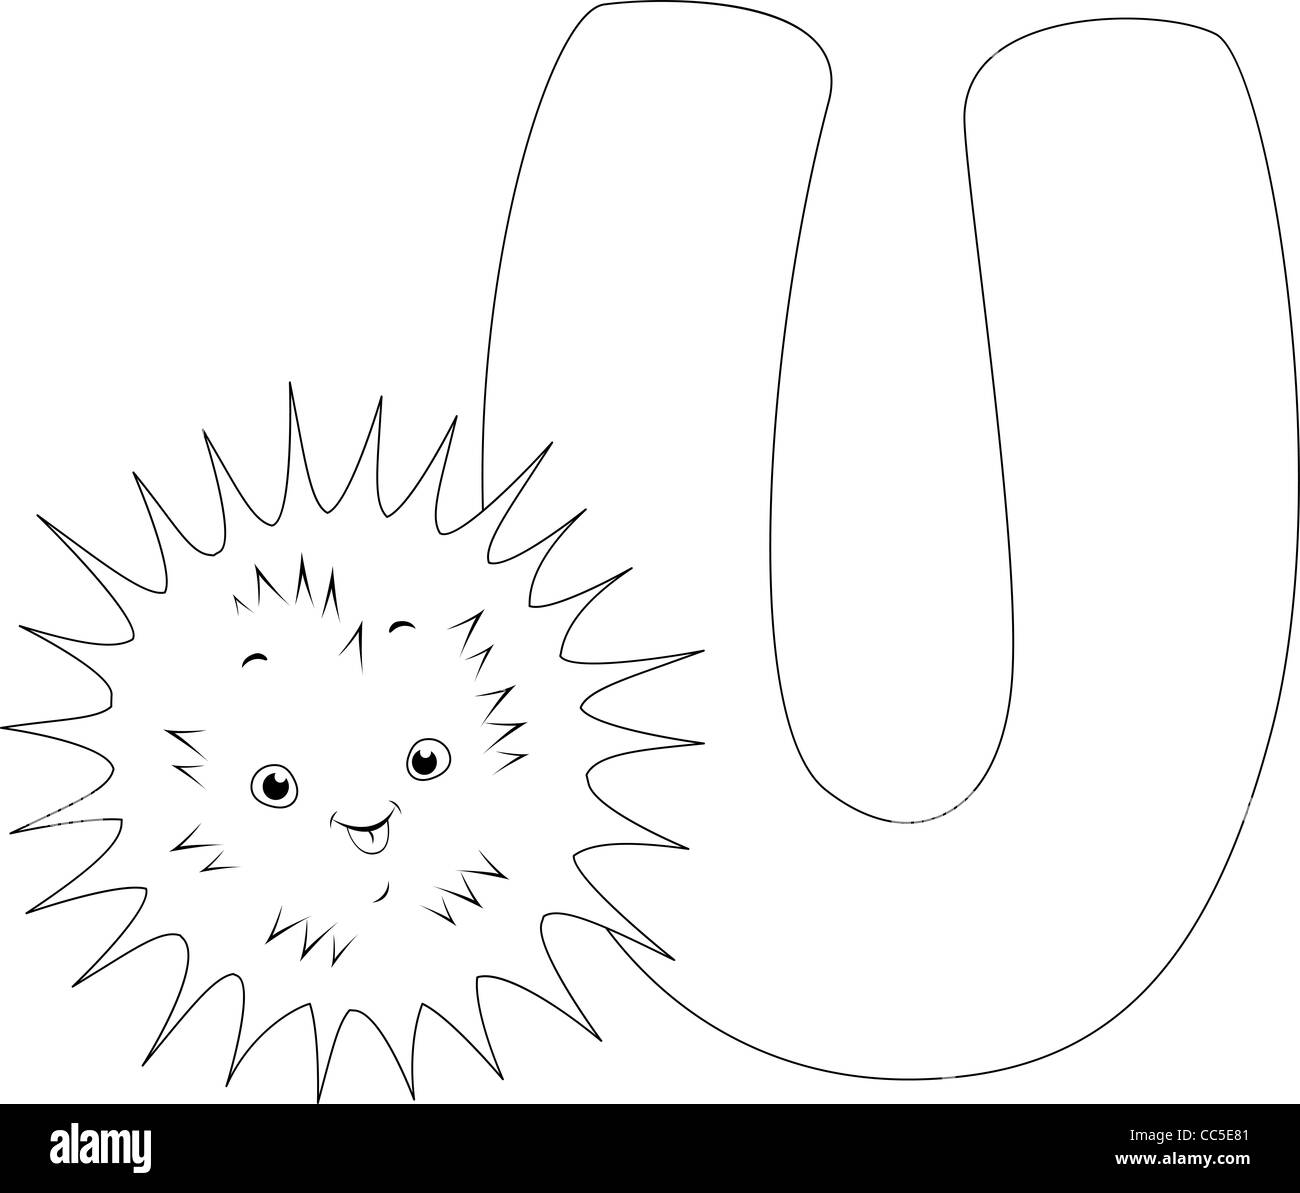 Sea Urchin Black and White Stock Photos & Images - Alamy